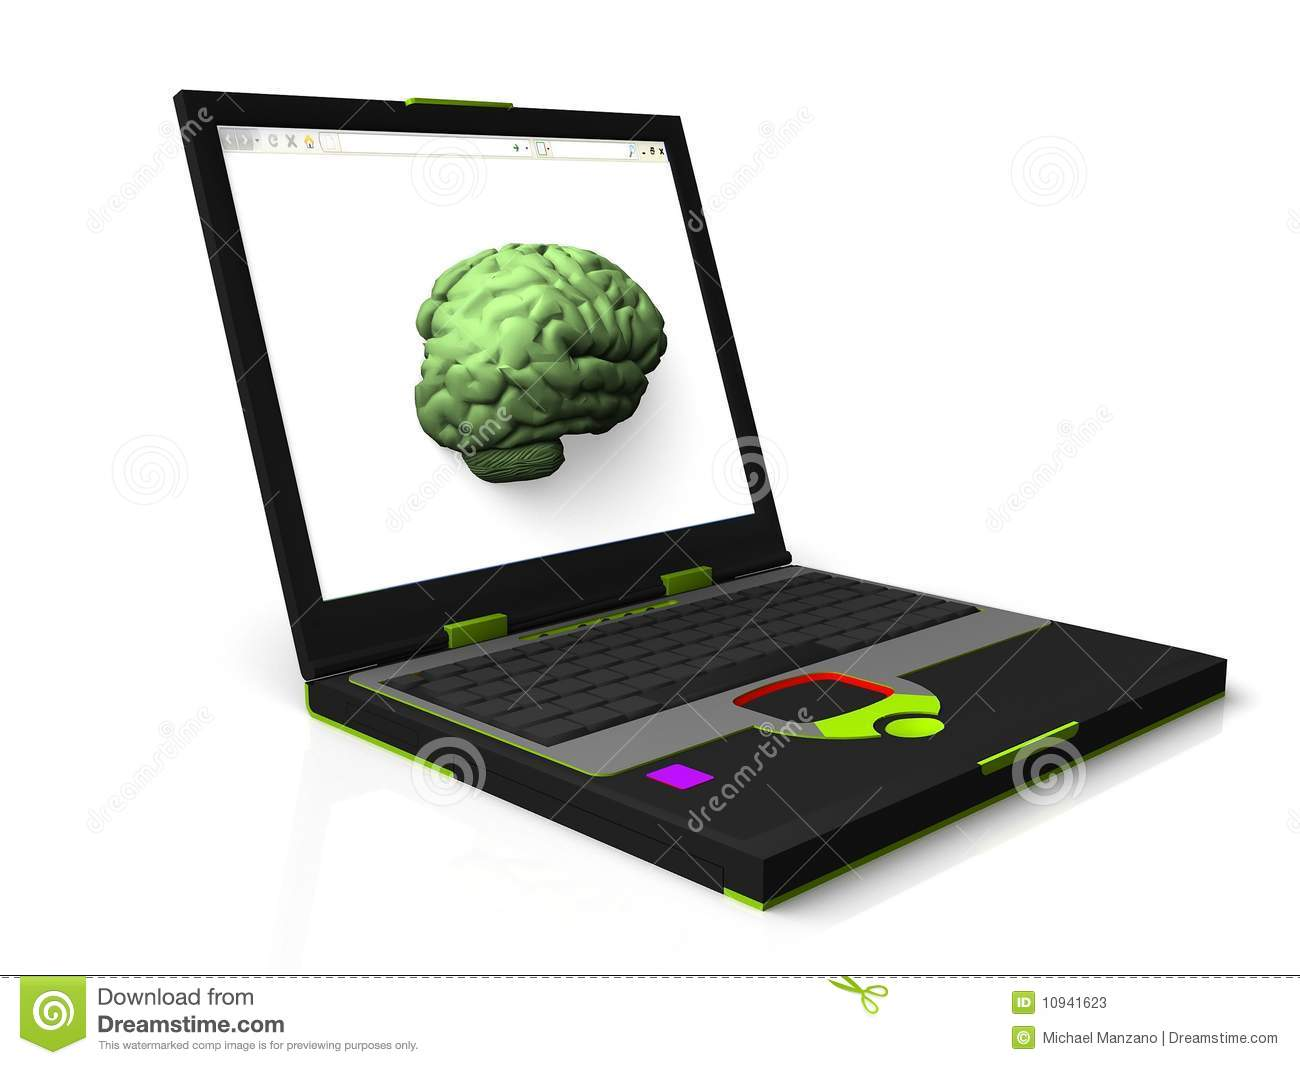 Mind of a computer